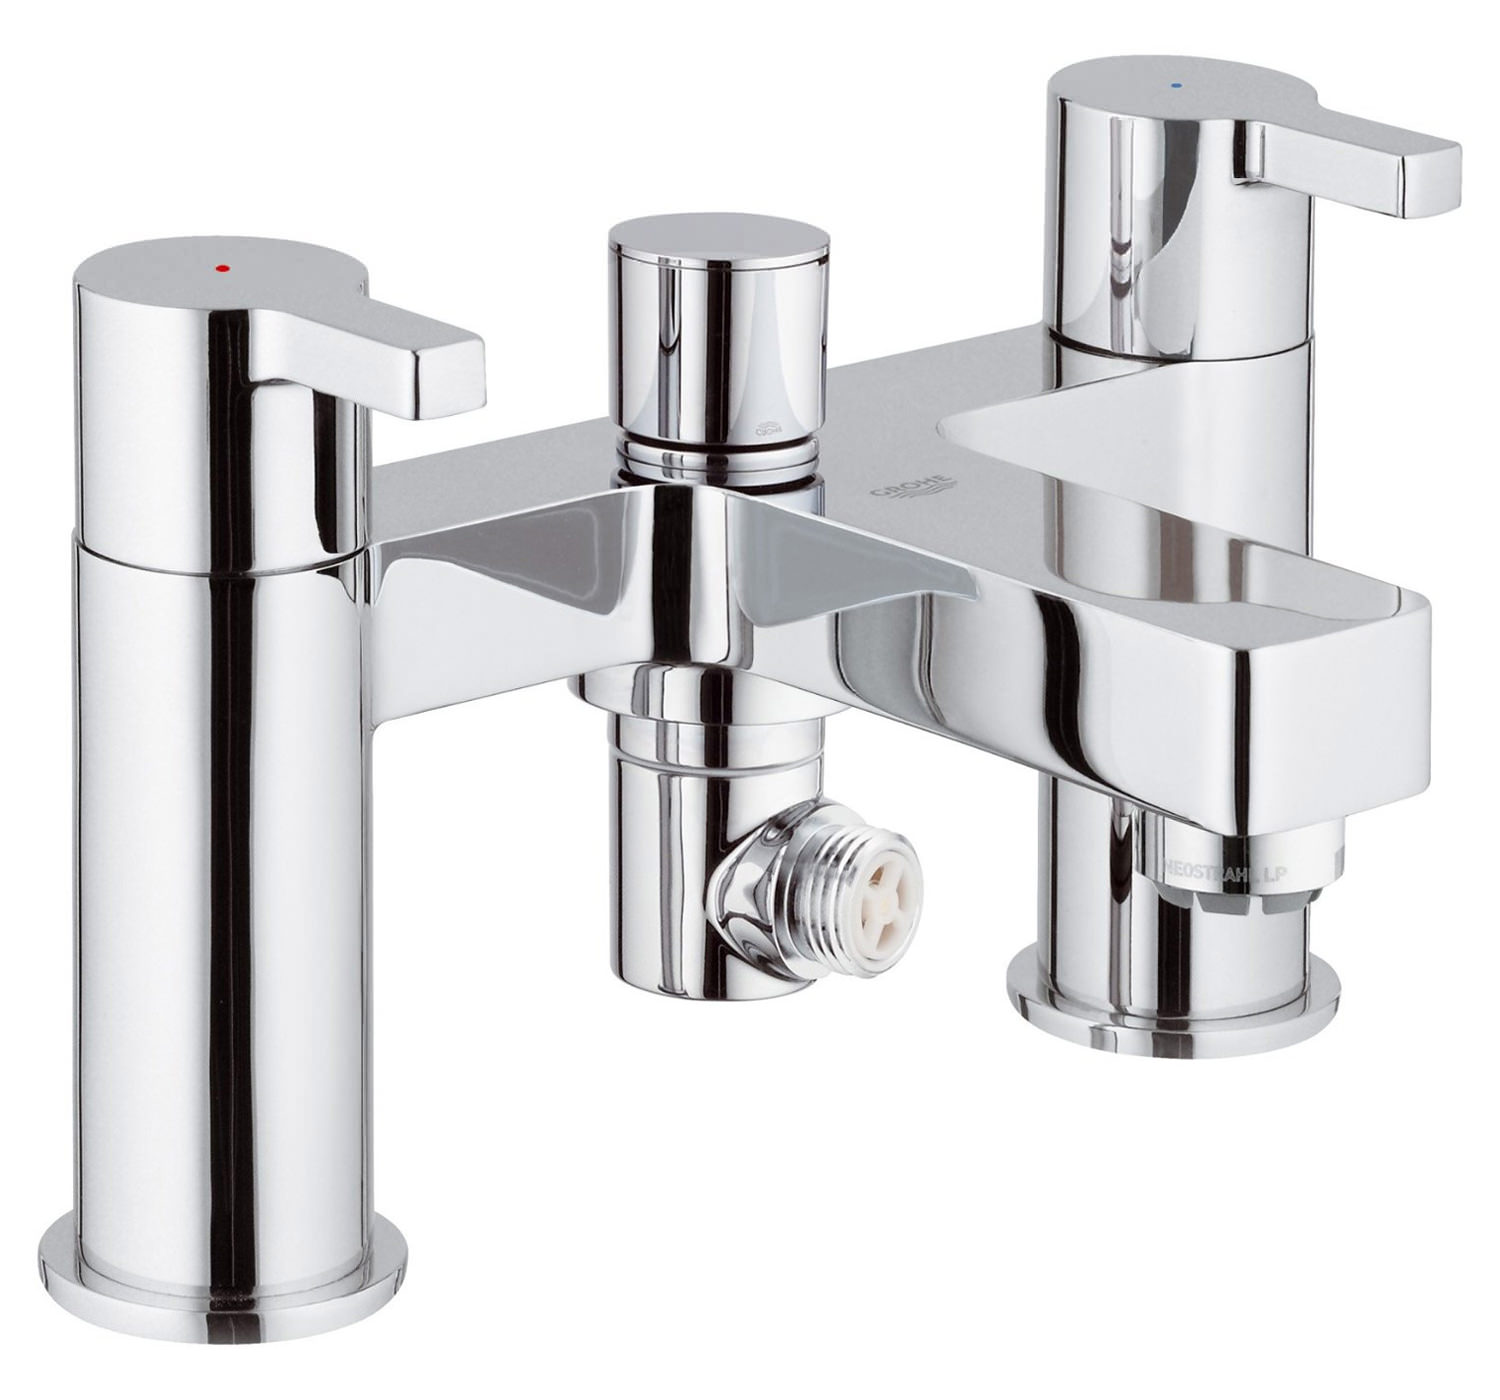 Grohe Lineare Half Inch Deck Mounted Bath Shower Mixer Tap 25113000